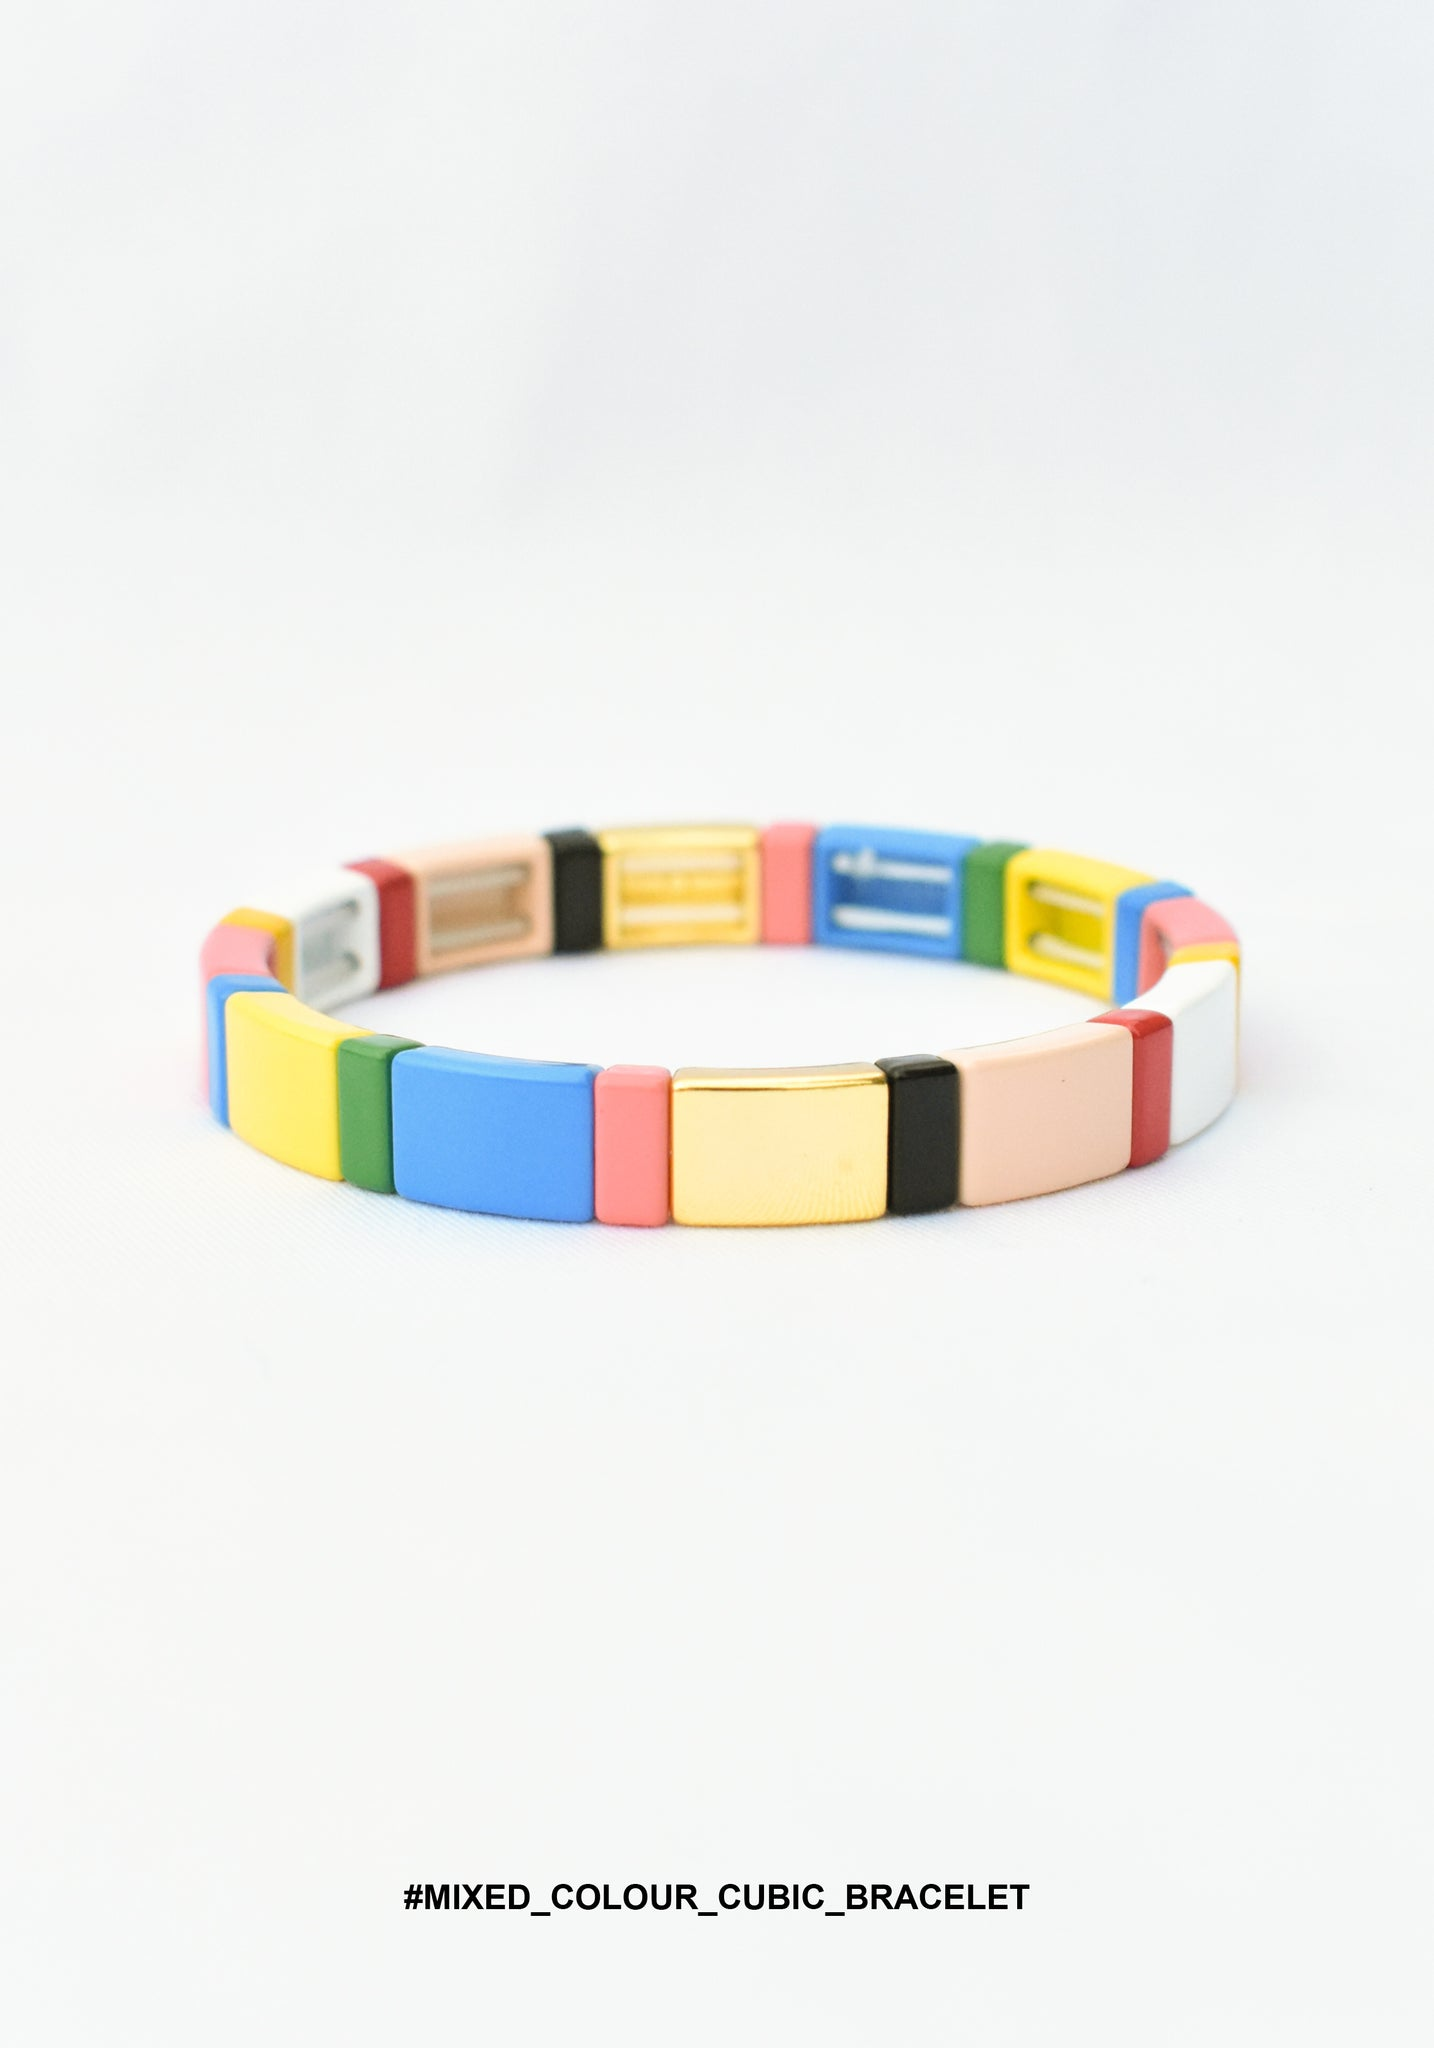 Mixed Colour Cubic Bracelet - whoami